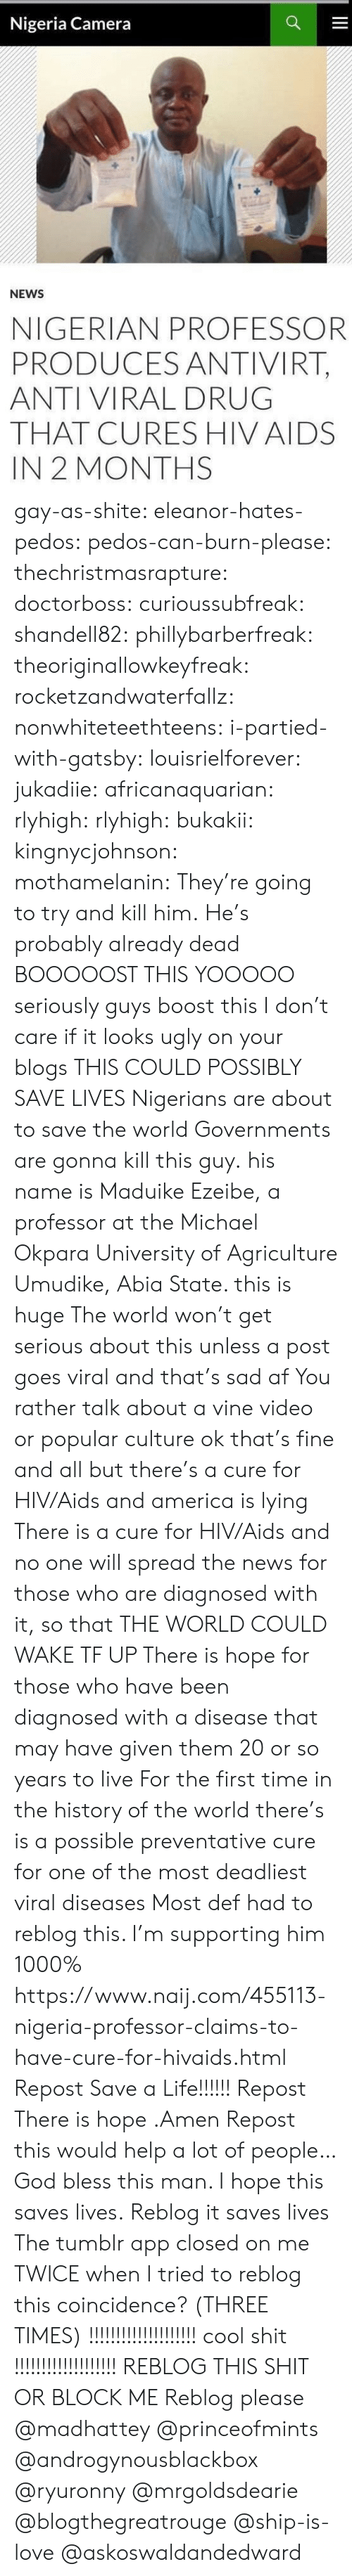 Seriously Guys: Nigeria Camera  NEWS  NIGERIAN PROFESSOR  PRODUCES ANTIVIRT,  ANTI VIRAL DRUG  THAT CURES HIV AIDS  IN 2 MONTHS gay-as-shite:  eleanor-hates-pedos:  pedos-can-burn-please:   thechristmasrapture:  doctorboss:  curioussubfreak:   shandell82:   phillybarberfreak:   theoriginallowkeyfreak:   rocketzandwaterfallz:   nonwhiteteethteens:  i-partied-with-gatsby:  louisrielforever:  jukadiie:  africanaquarian:  rlyhigh:  rlyhigh:  bukakii:  kingnycjohnson:  mothamelanin:  They're going to try and kill him.  He's probably already dead   BOOOOOST THIS  YOOOOO  seriously guys boost this I don't care if it looks ugly on your blogs THIS COULD POSSIBLY SAVE LIVES  Nigerians are about to save the world    Governments are gonna kill this guy.  his name is Maduike Ezeibe, a professor at the Michael Okpara University of Agriculture Umudike, Abia State. this is huge  The world won't get serious about this unless a post goes viral and that's sad af You rather talk about a vine video or popular culture ok that's fine and all but there's a cure for HIV/Aids and america is lying There is a cure for HIV/Aids and no one will spread the news for those who are diagnosed with it, so that THE WORLD COULD WAKE TF UP There is hope for those who have been diagnosed with a disease that may have given them 20 or so years to live For the first time in the history of the world there's is a possible preventative cure for one of the most deadliest viral diseases   Most def had to reblog this. I'm supporting him 1000%   https://www.naij.com/455113-nigeria-professor-claims-to-have-cure-for-hivaids.html   Repost  Save a Life!!!!!! Repost   There is hope .Amen Repost this would help a lot  of people…   God bless this man. I hope this saves lives.   Reblog it saves lives   The tumblr app closed on me TWICE when I tried to reblog this  coincidence? (THREE TIMES)  !!!!!!!!!!!!!!!!!!!! cool shit !!!!!!!!!!!!!!!!!!!   REBLOG THIS SHIT OR BLOCK ME  Reblog please @madhattey @princeofmints @androgyno